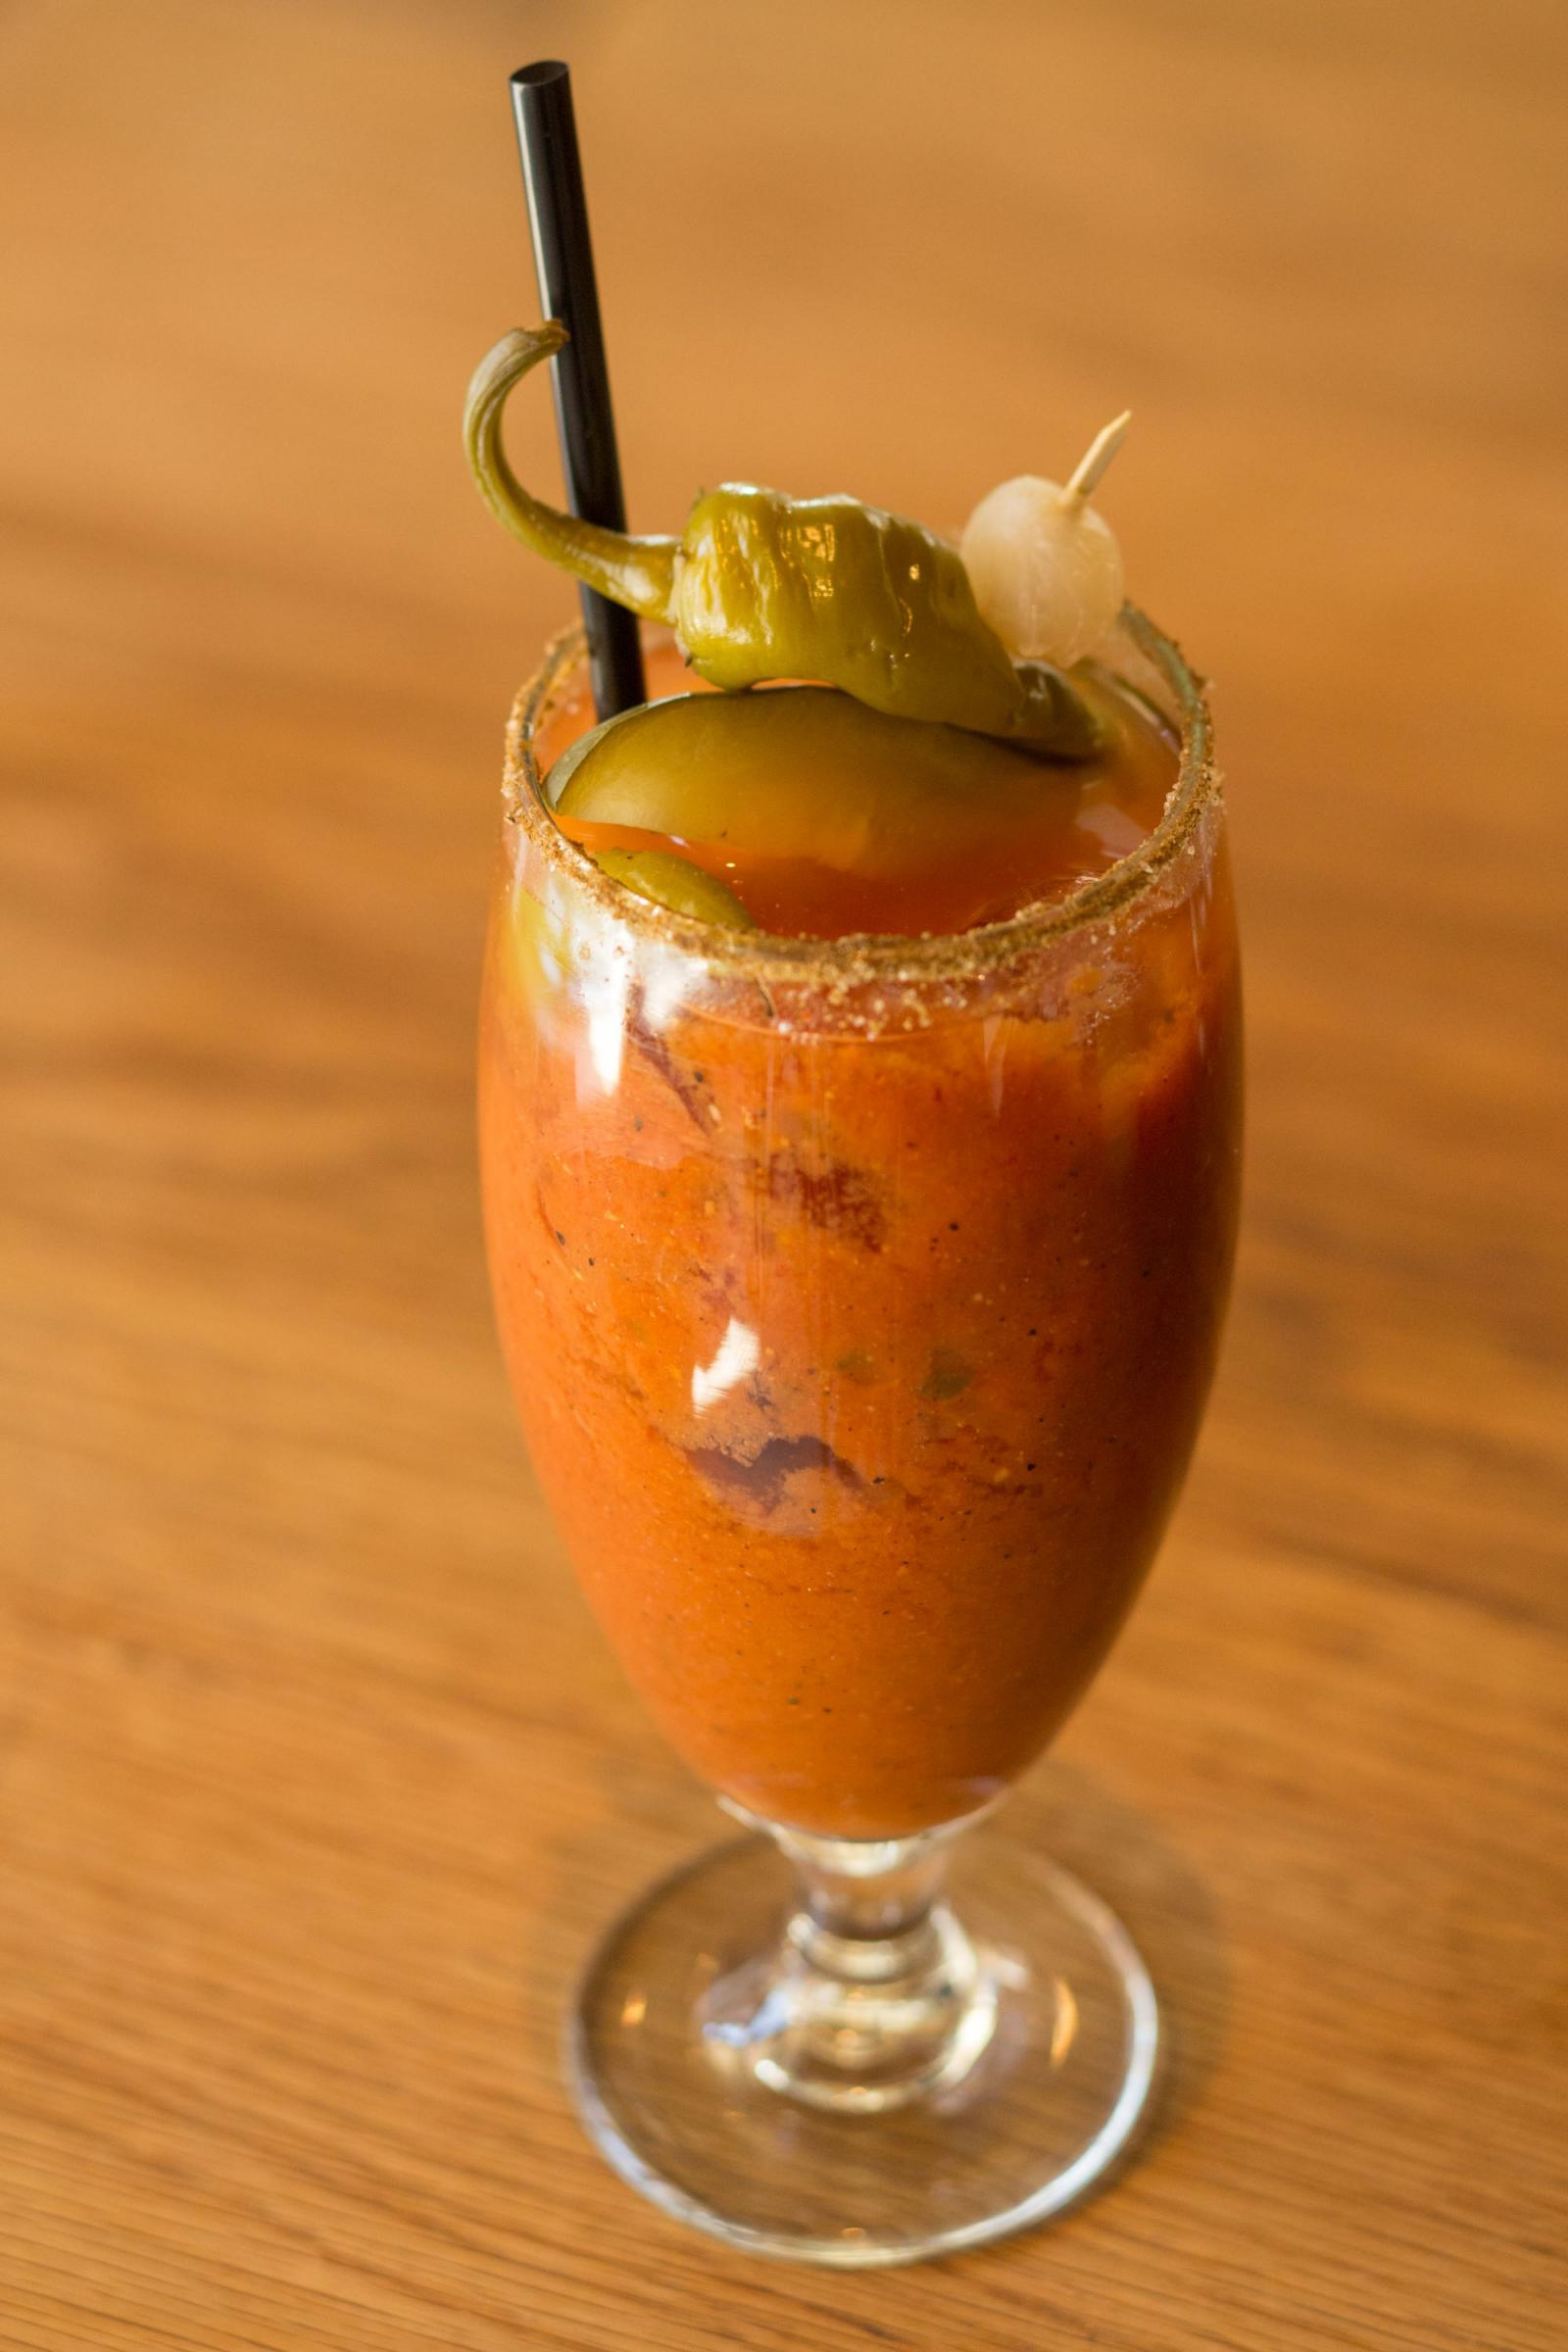 10 Bloody Mary recipes by Iron Chef Jose Garce.